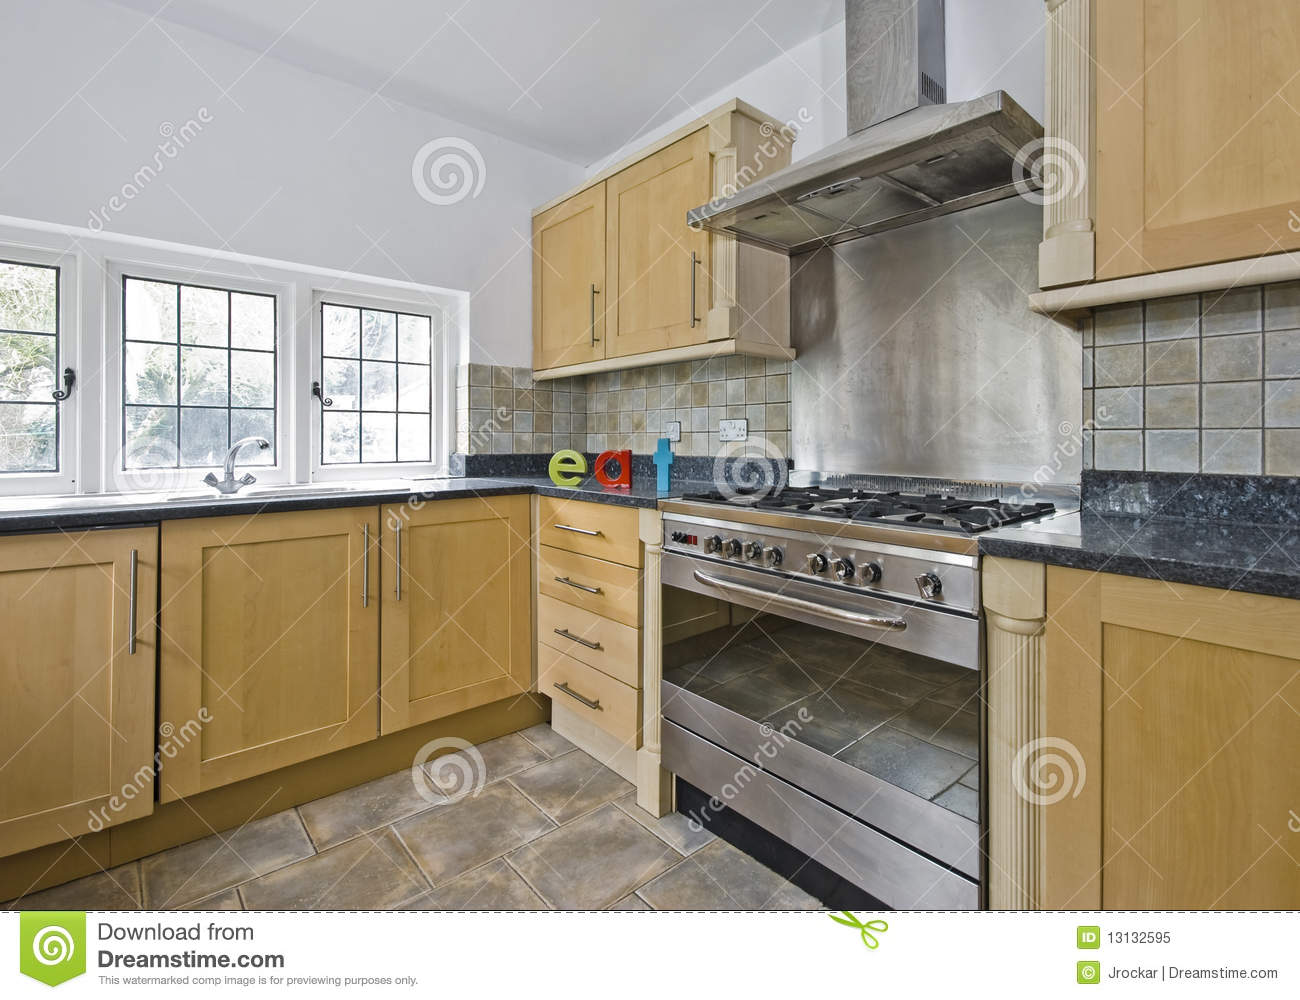 Kitchen with large oven stock image image of cook house 13132595 kitchen with large oven publicscrutiny Images